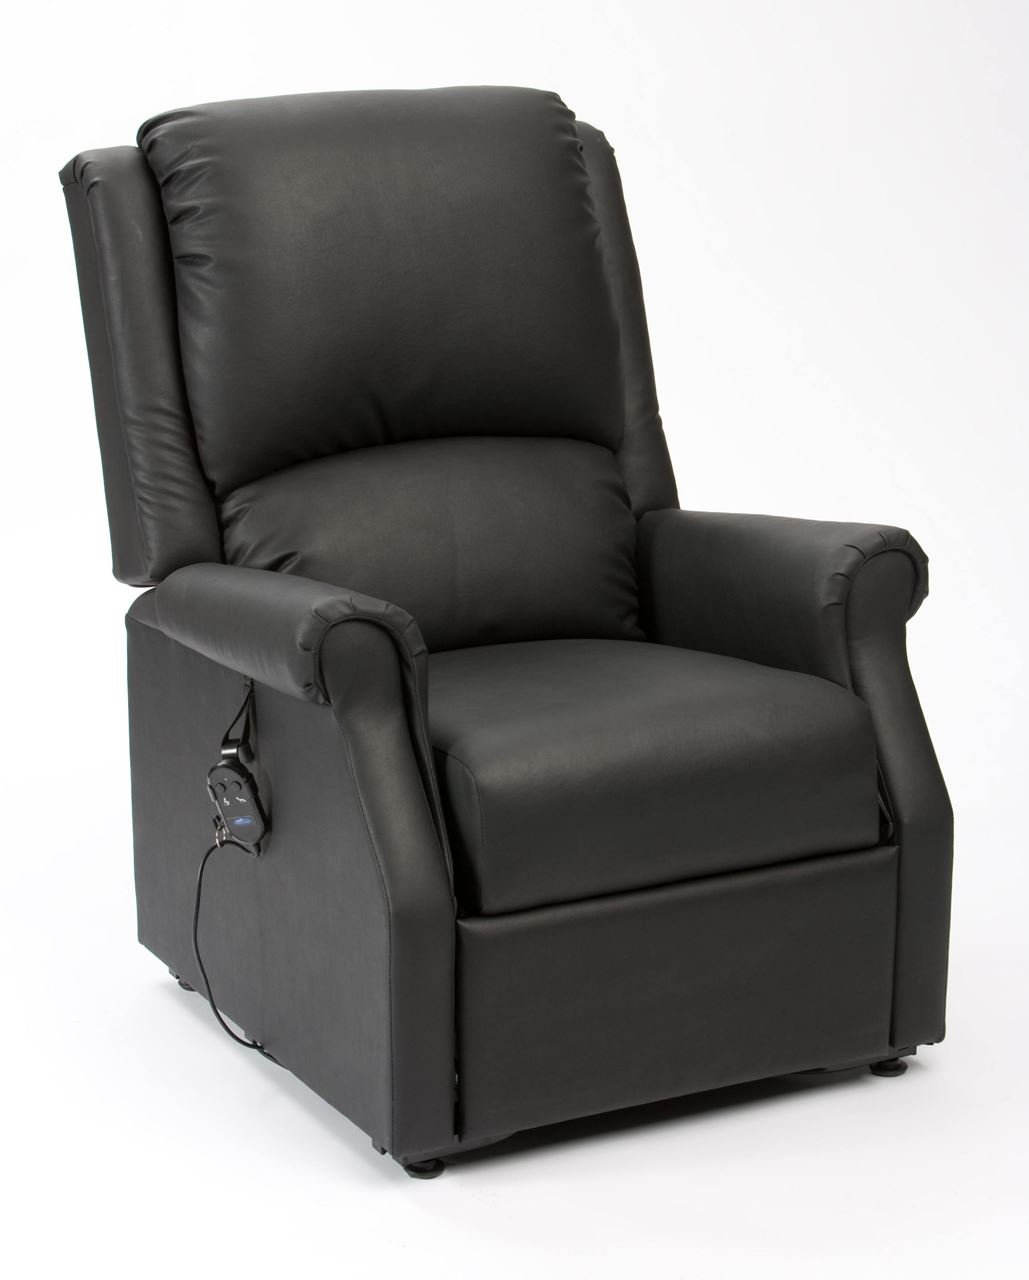 Picture for category Riser Recliner chairs